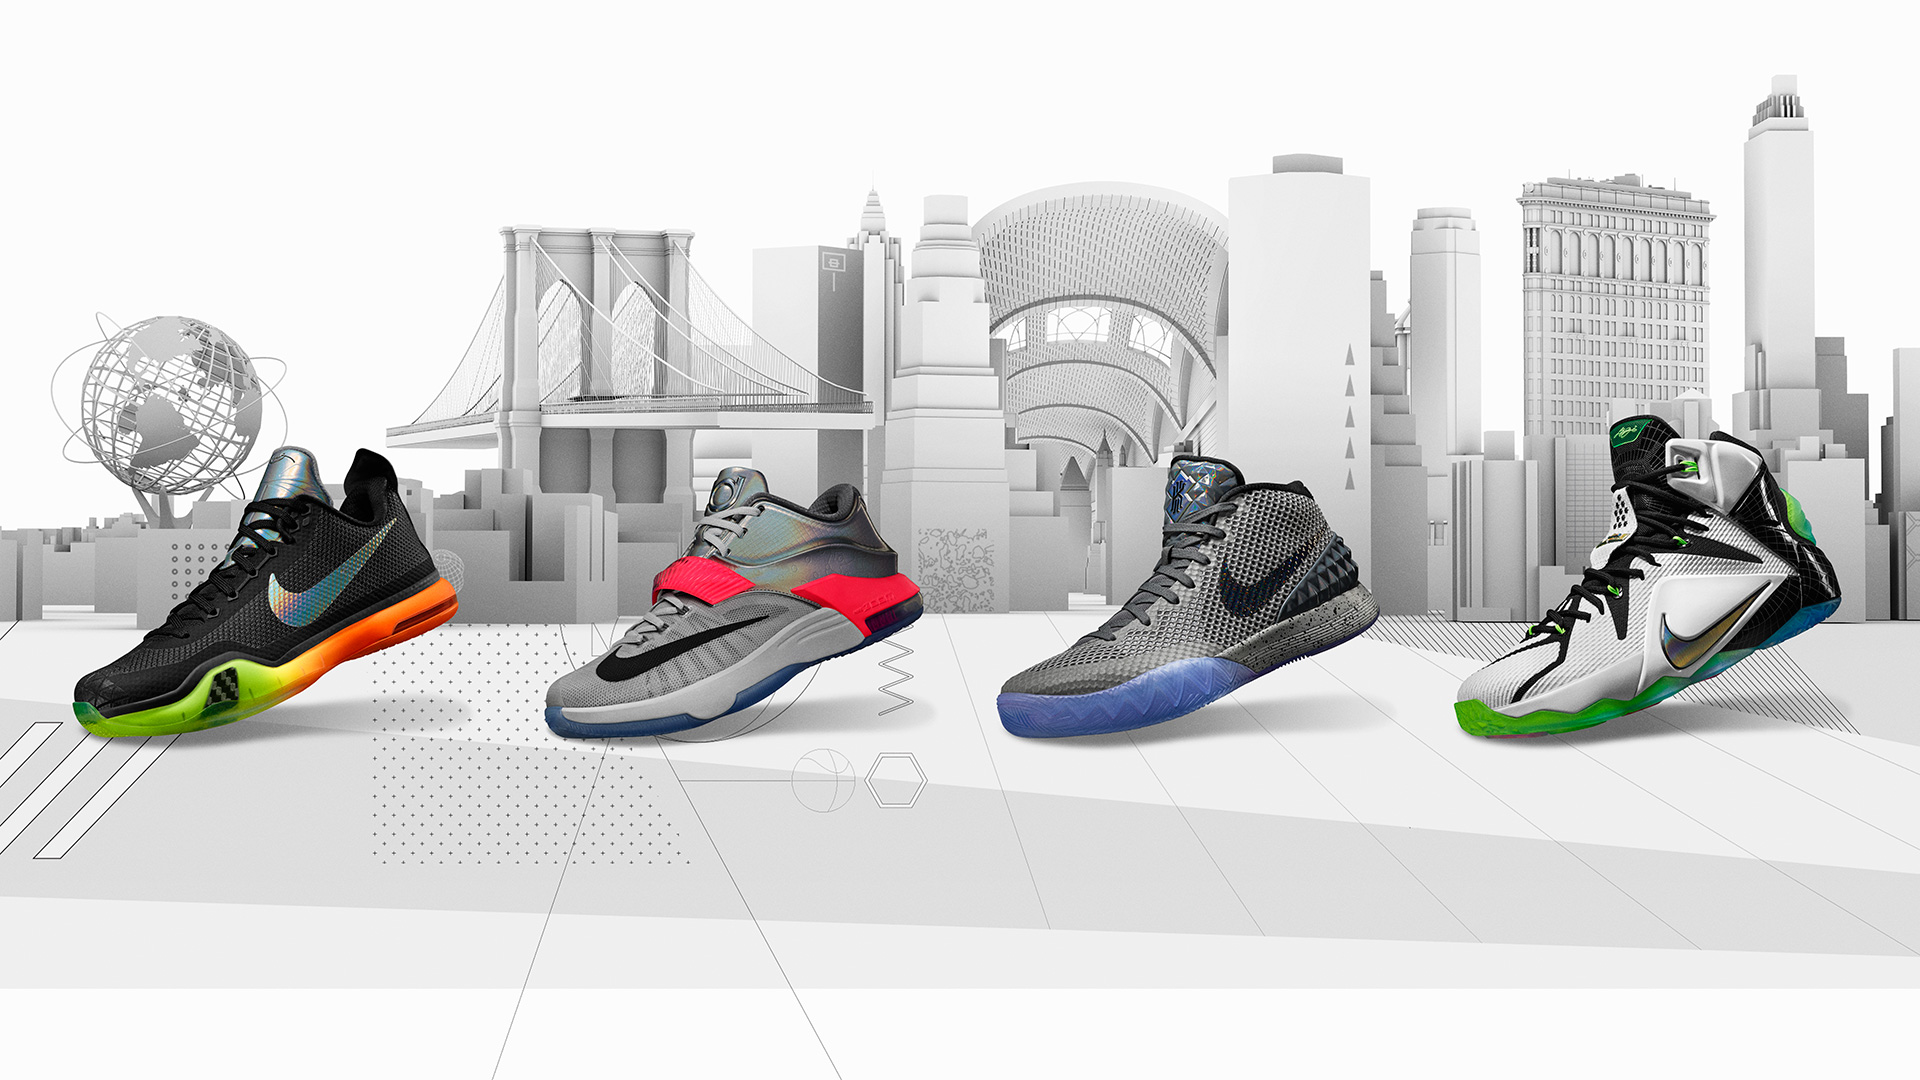 Nike's KOBE X, KD 7, KYRIE 1 and LEBRON 12 New York City collection